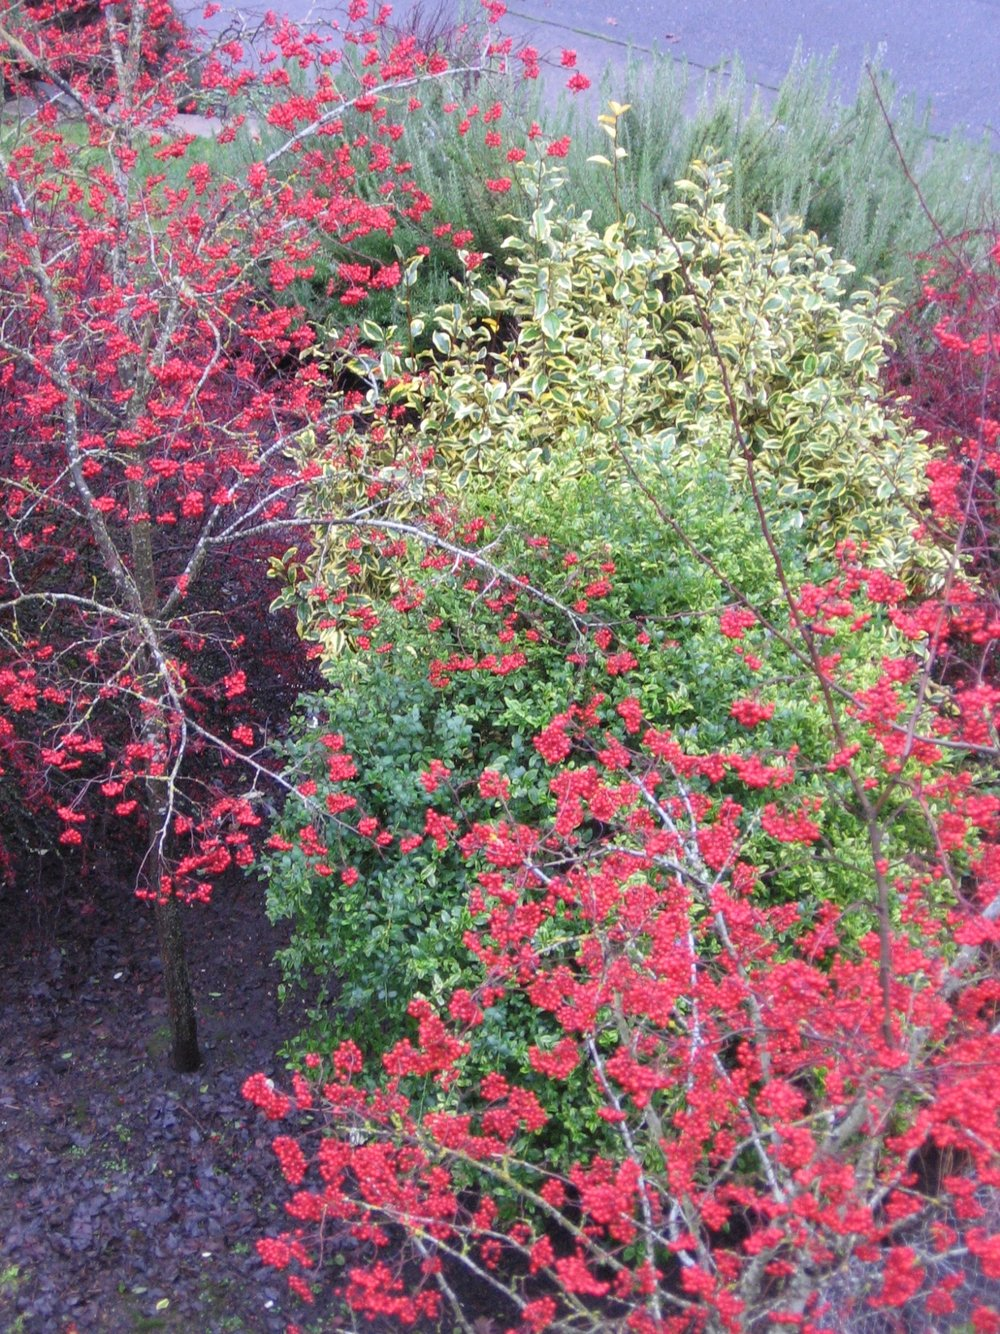 Crataegus phaenopyrum (Washington Hawthorn), Ceanothus 'El Dorado', and Elaeagnus ebbingei 'Gilt Edge', winter 2008.